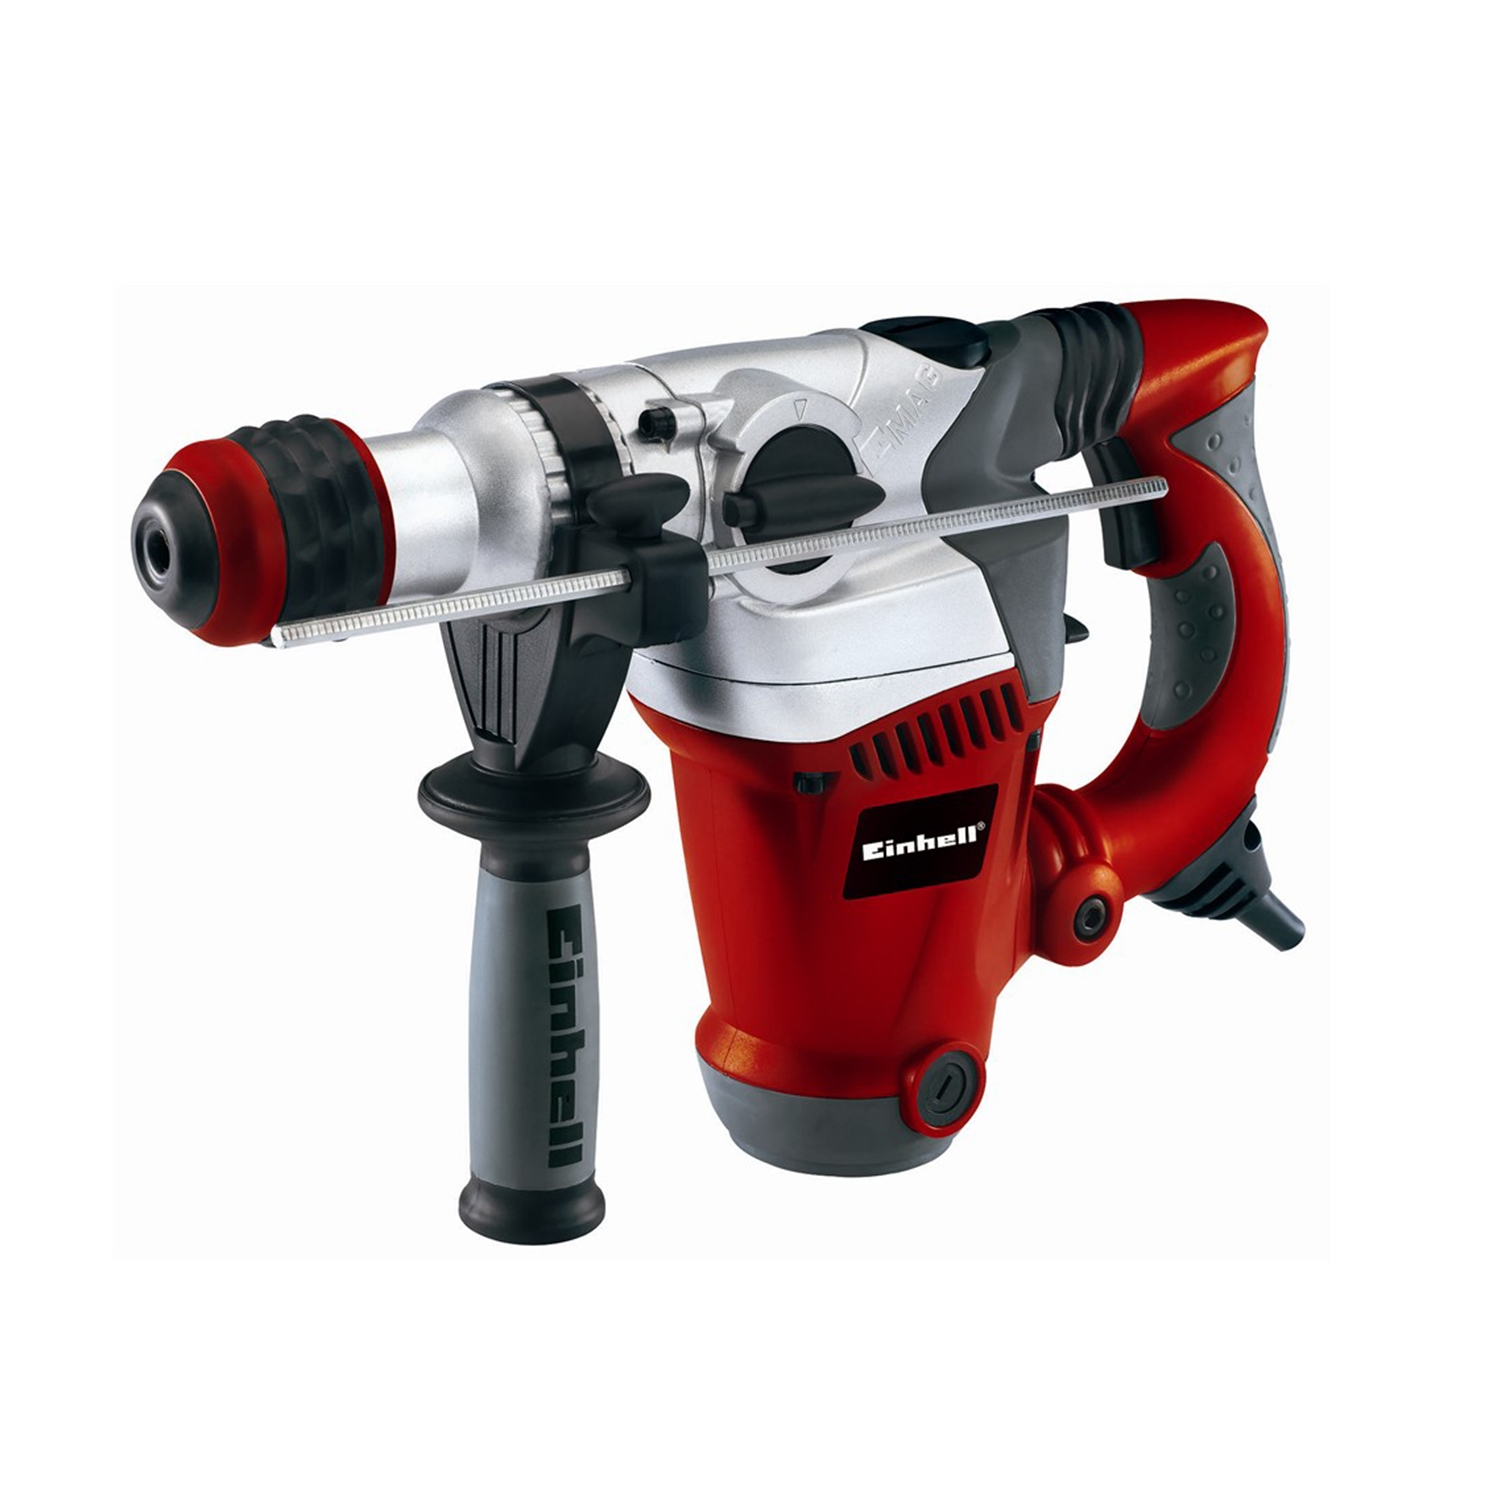 Image of Einhell Red 1250w Rotary Hammer, Black